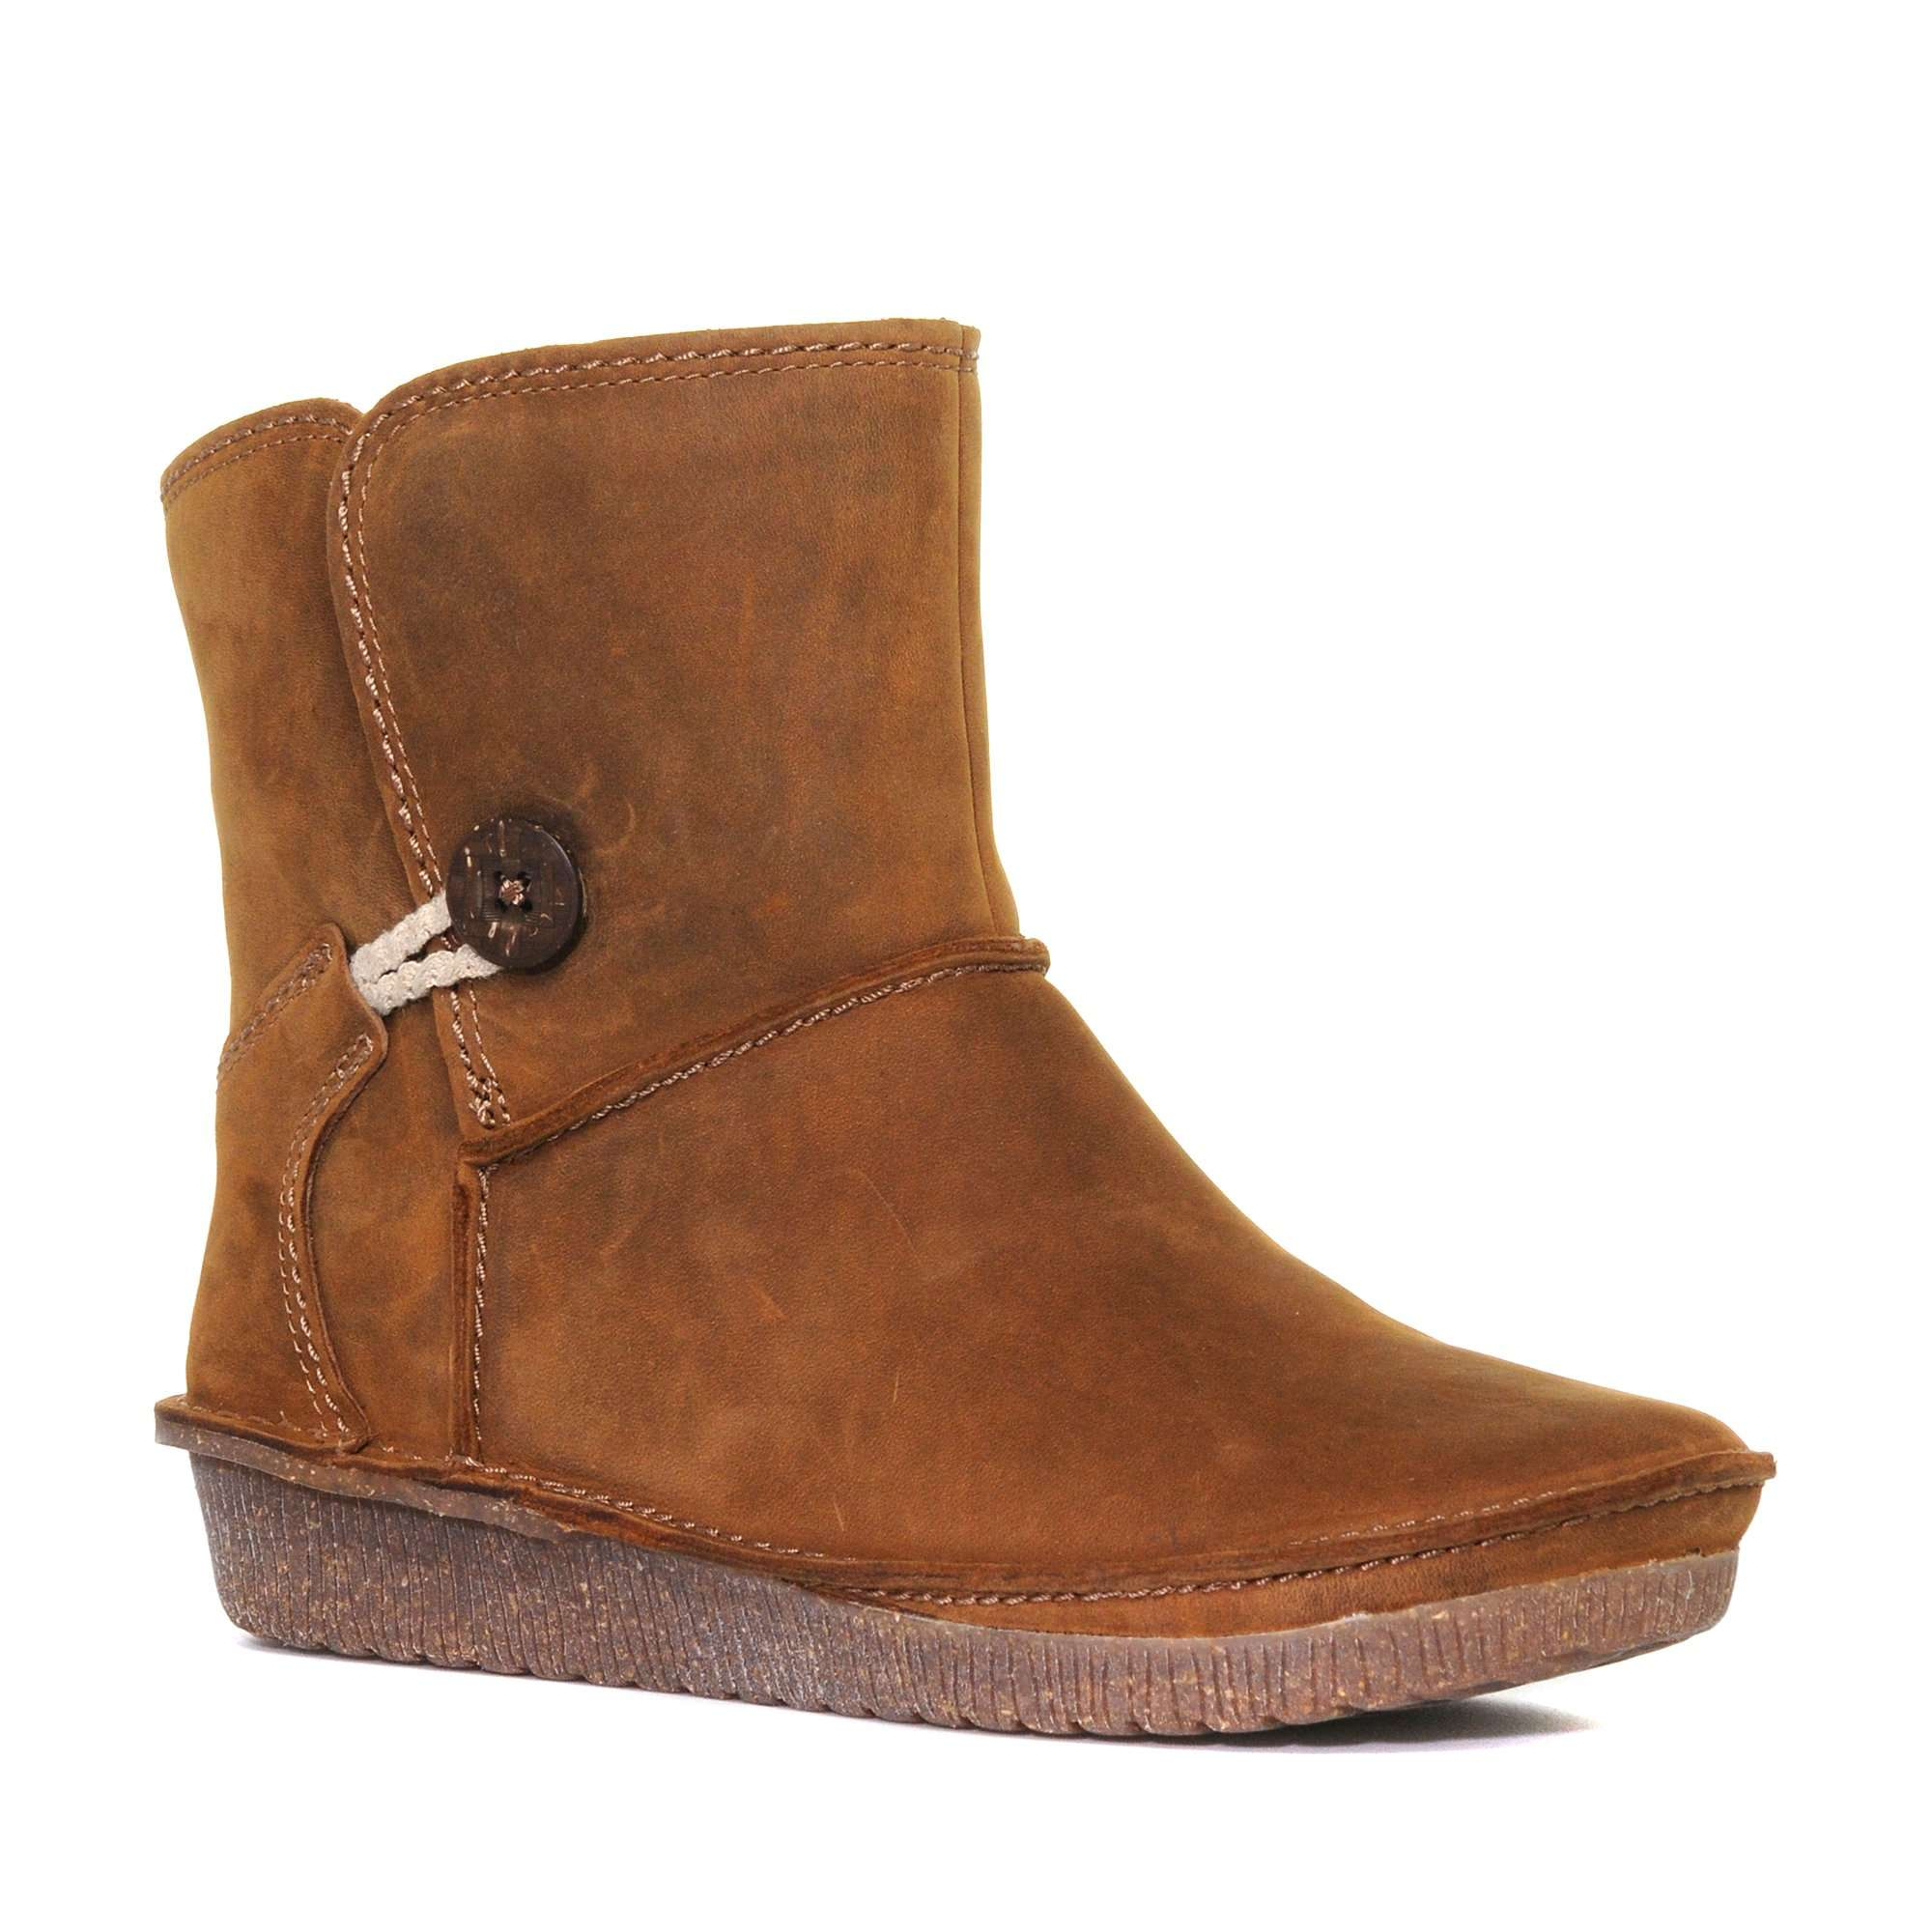 CLARKS Lima Caprice Ankle Boot